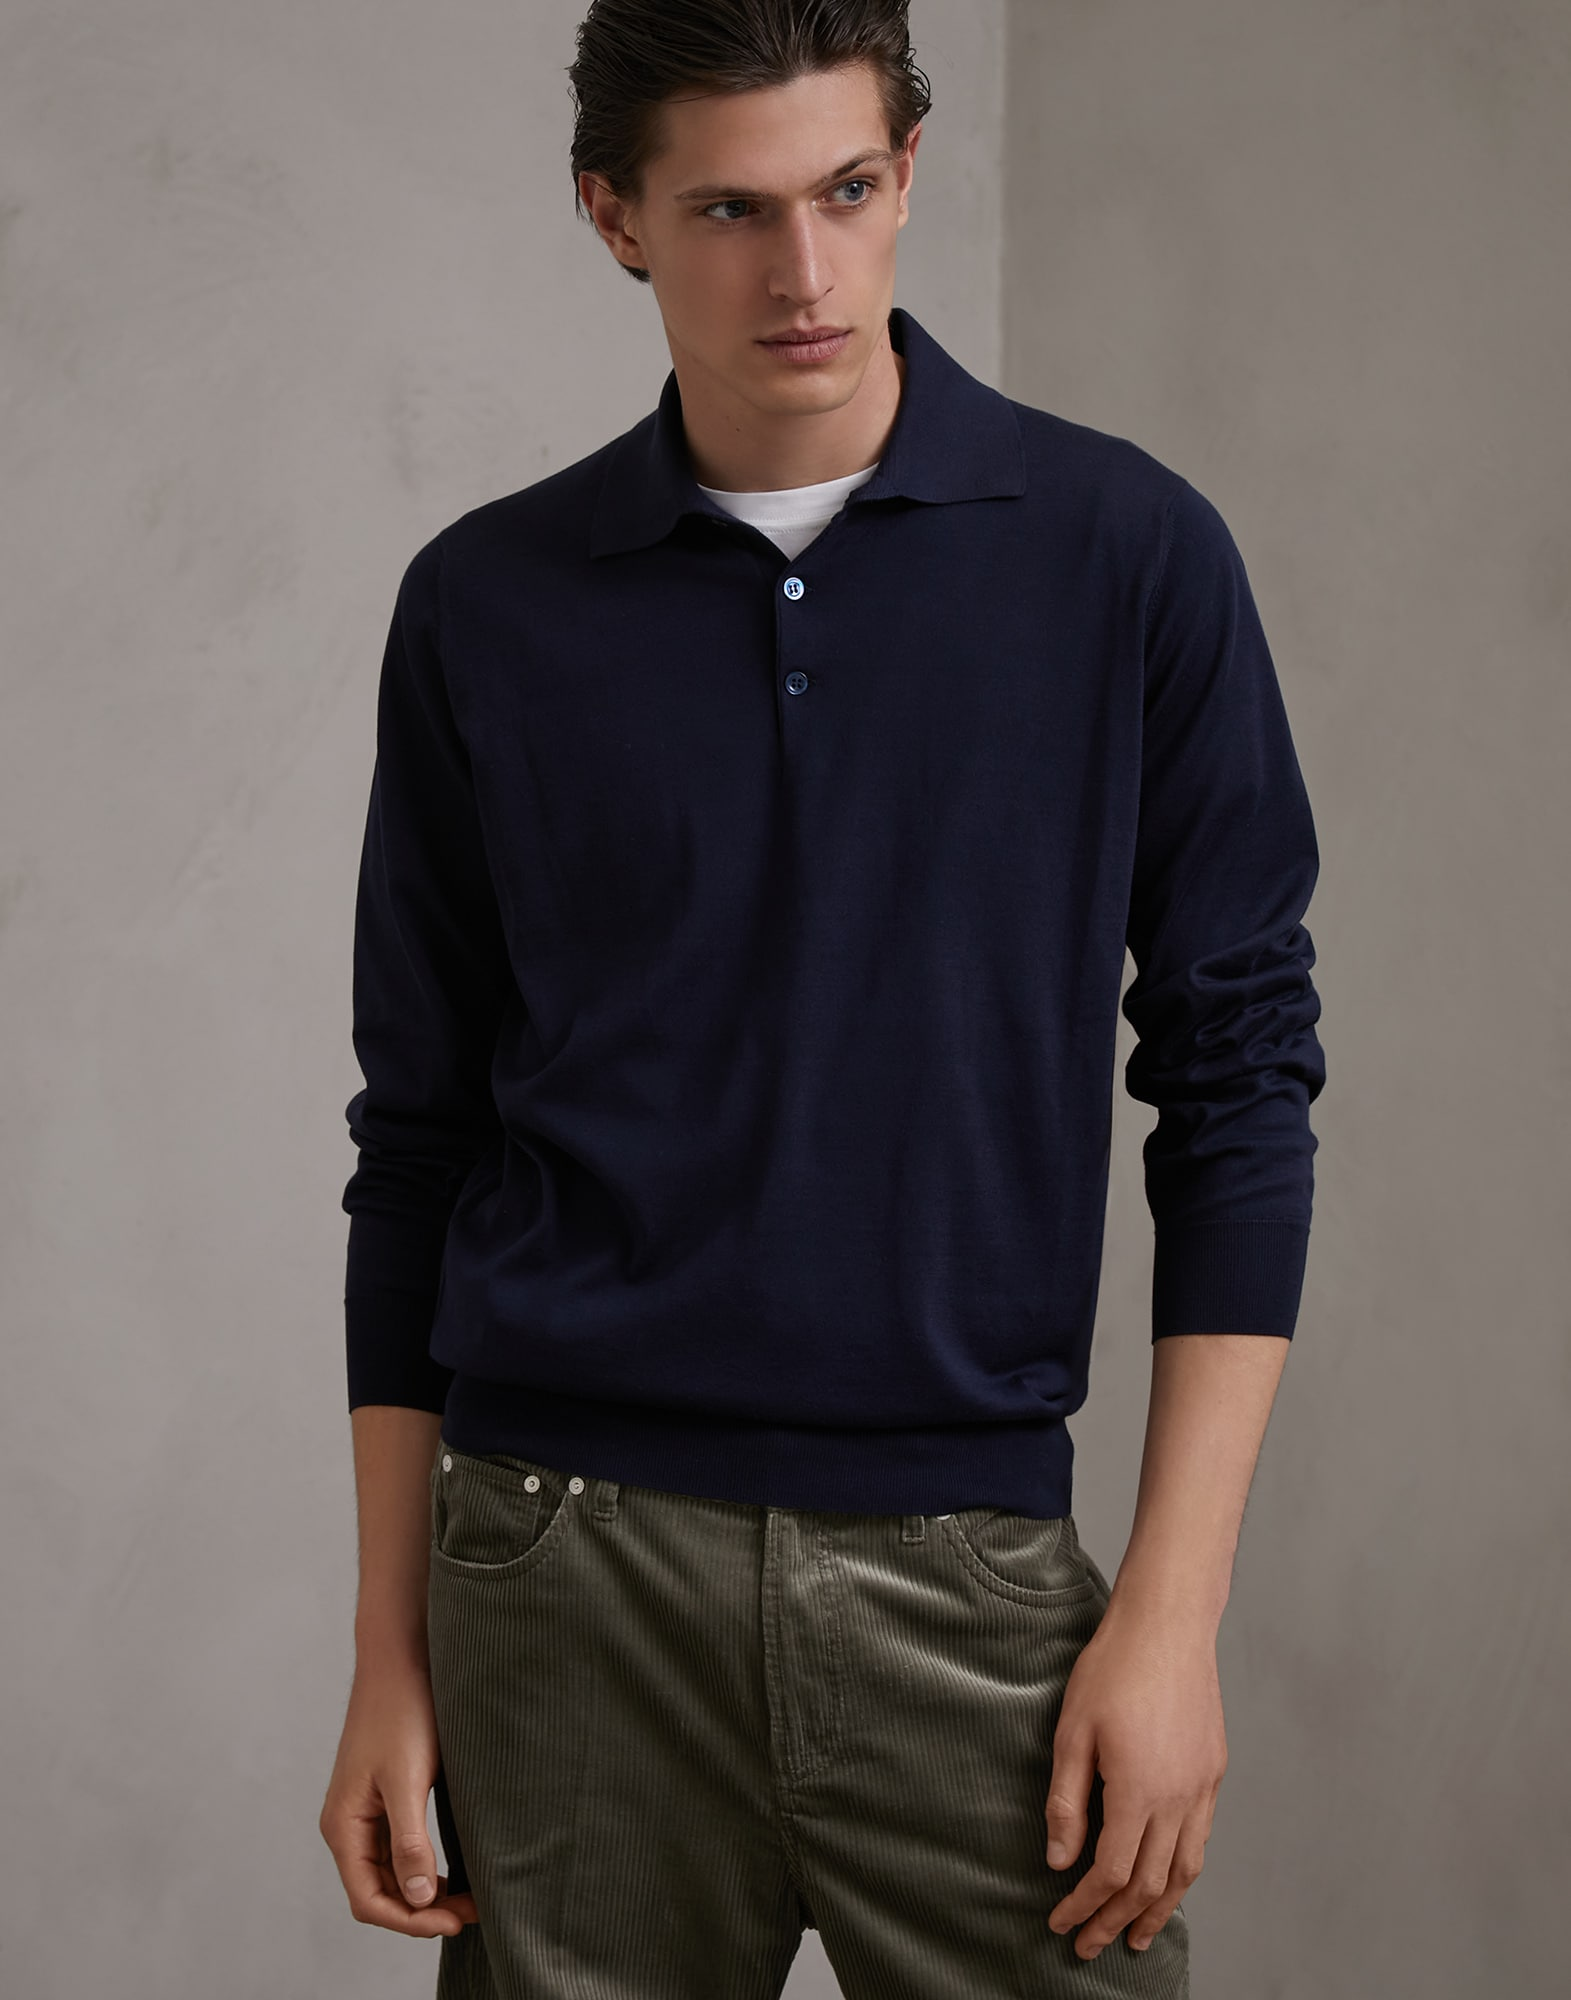 Polo-Style Sweater Navy Blue Man 1 - Brunello Cucinelli